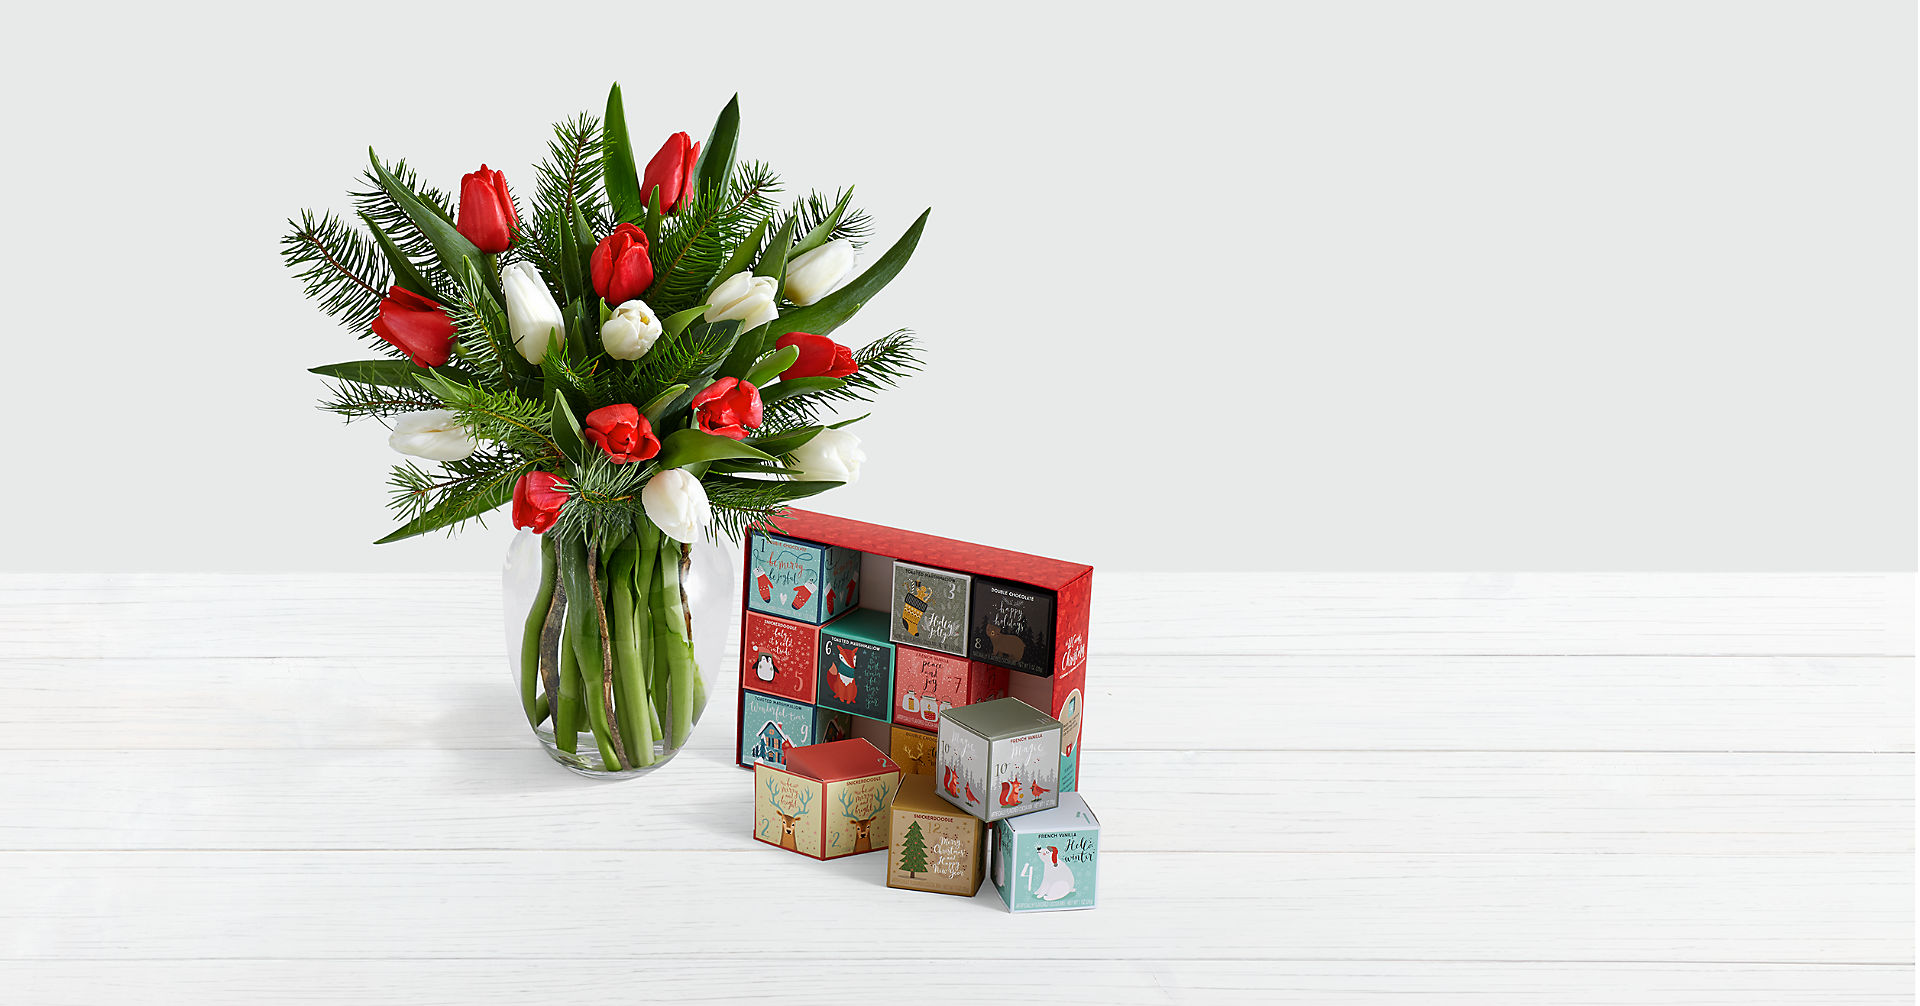 15 Christmas Tulips with Doug Fir with 12 Days of Christmas Cocoa - Image 1 Of 2